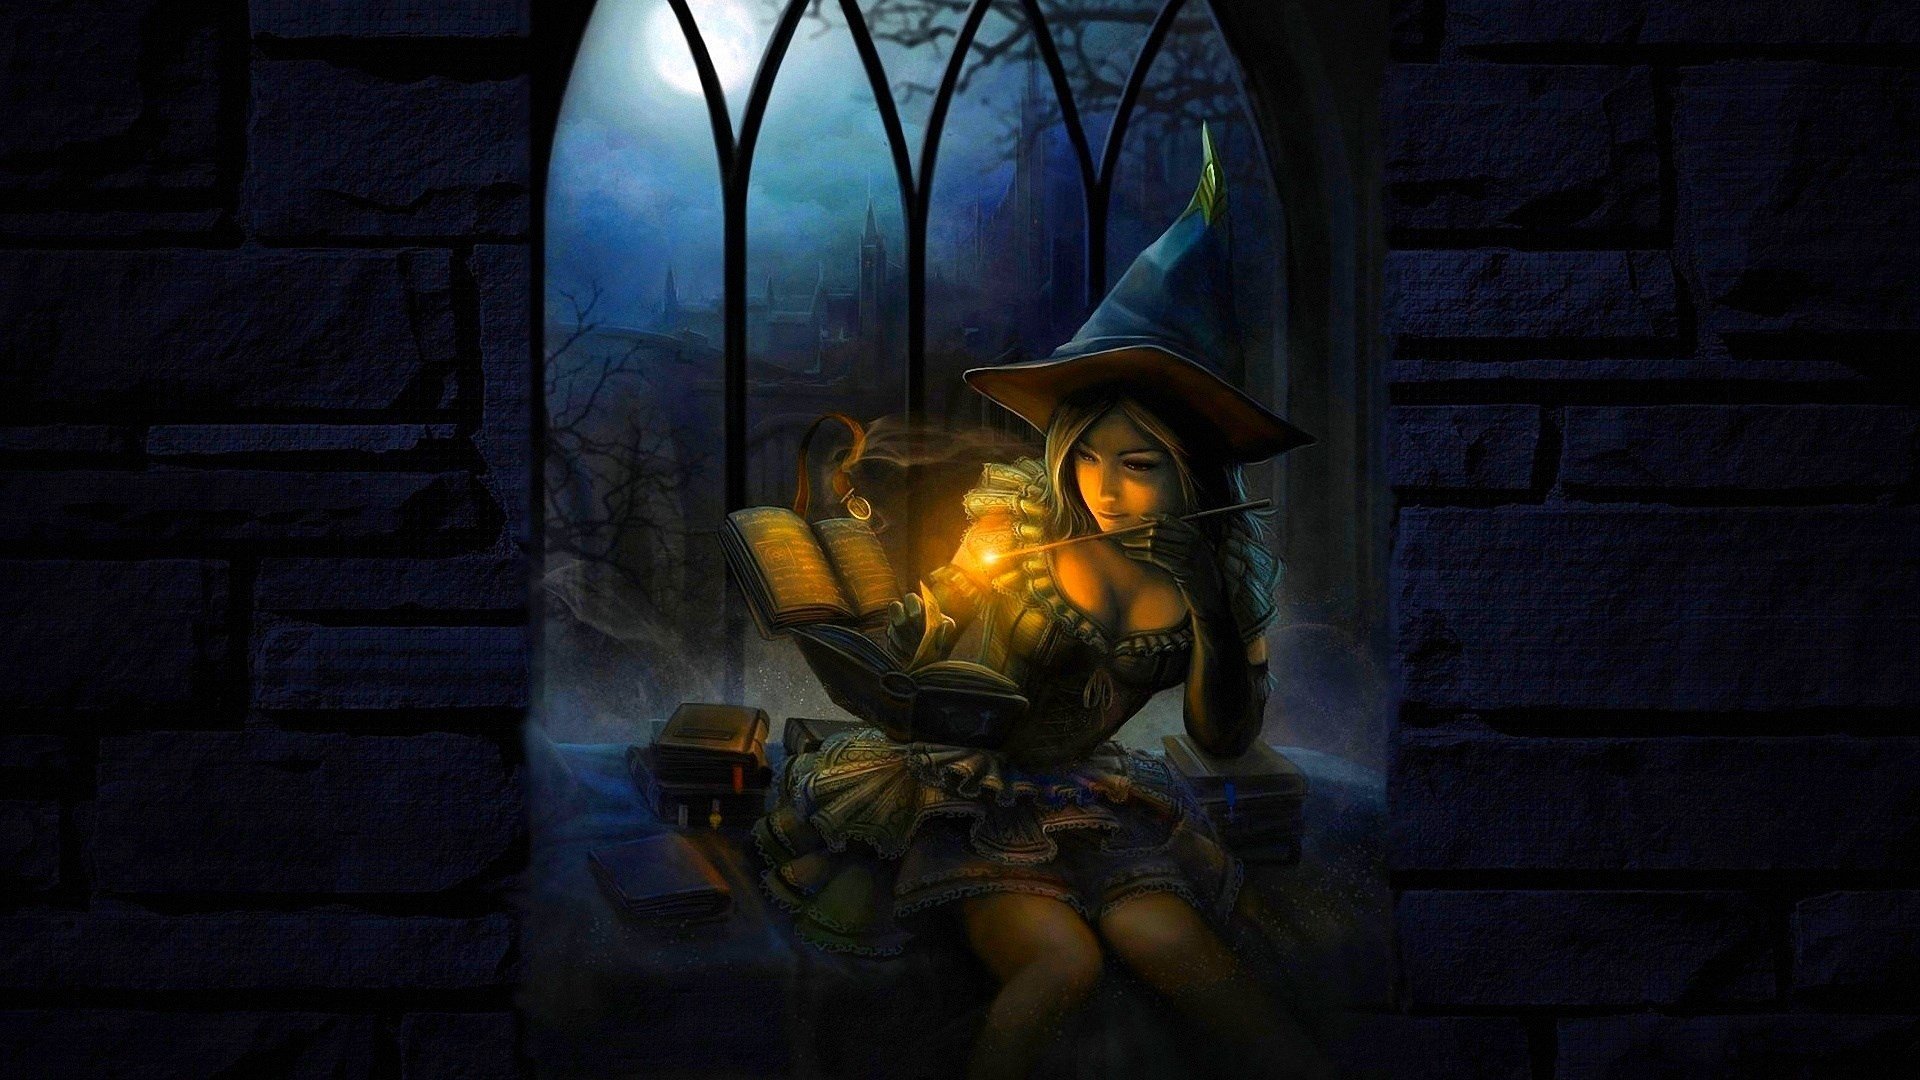 witch wallpaper pack 1080p hd, Hebron Young 2017-03-25 | ololoshka |  Pinterest | Beautiful witch and Witches